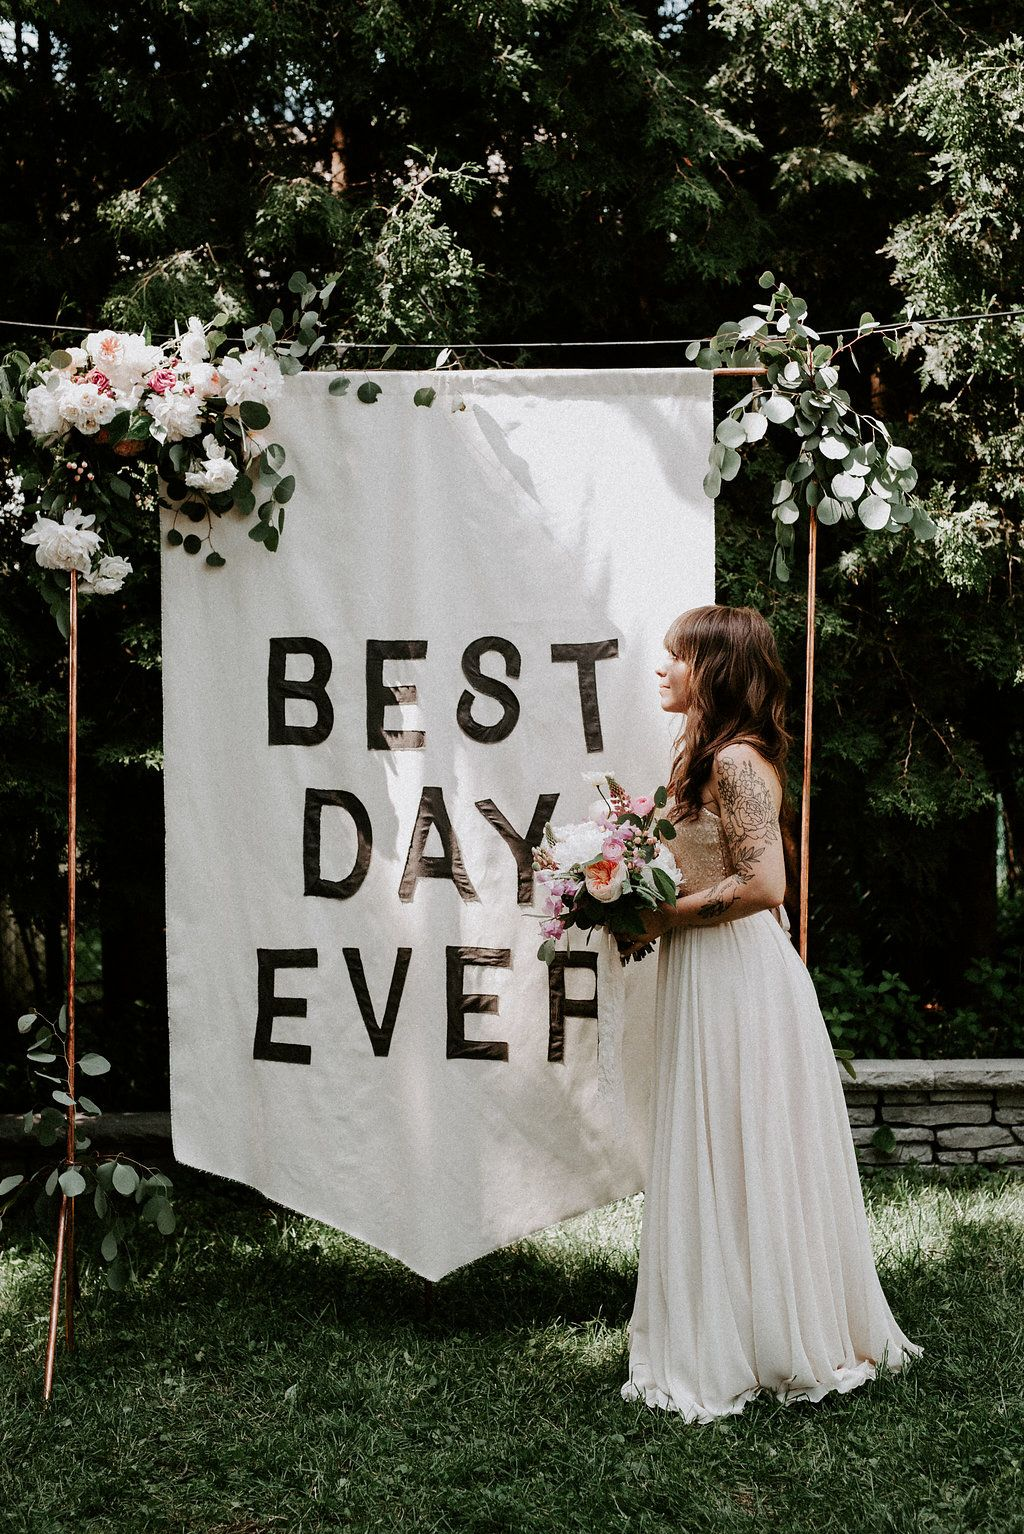 Backyard Wedding at Home with a Banner Backdrop | Outdoor ...